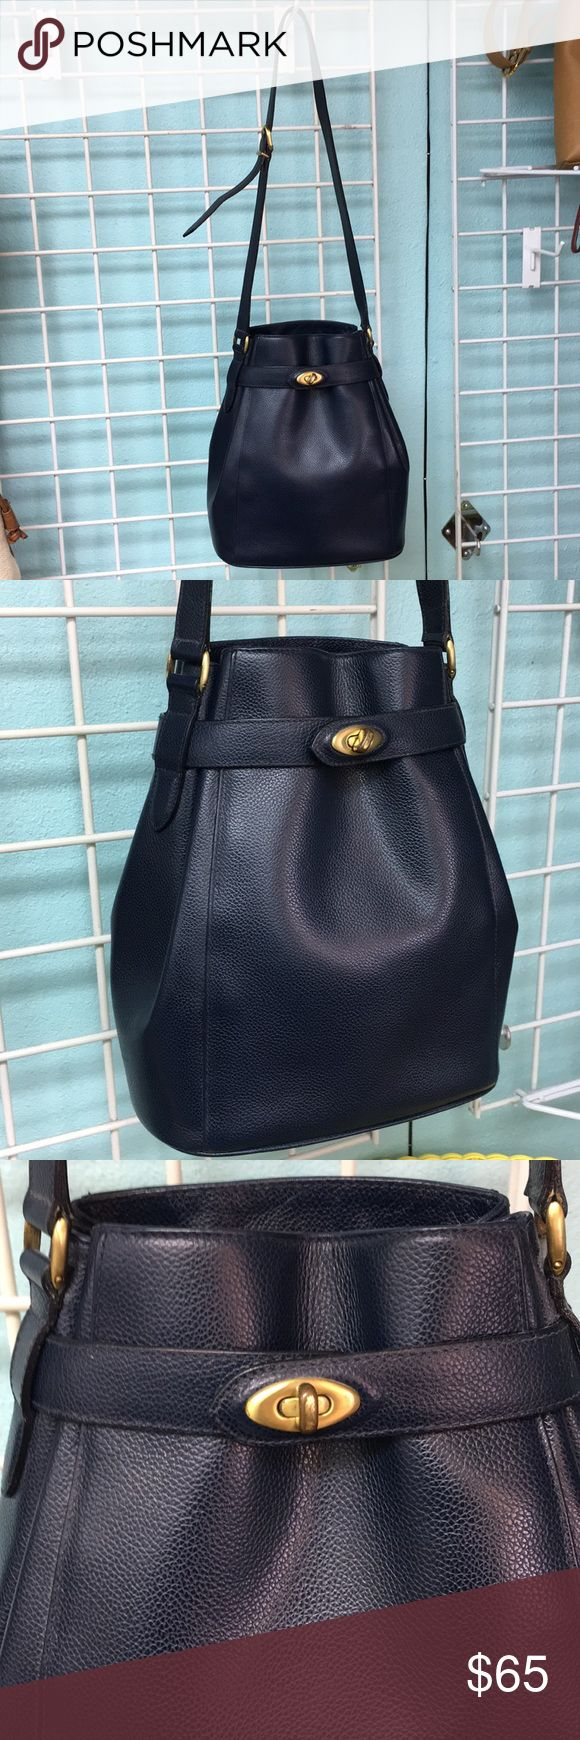 Vintage Coach Navy Purse This bag is gorgeous and in excellent condition. It is a navy blue bag with gold feet. So unique and they don't make them like this anymore. It has adjustable straps. Cute!!  My prices are very fair so no trades or lowball offers please. Coach Bags